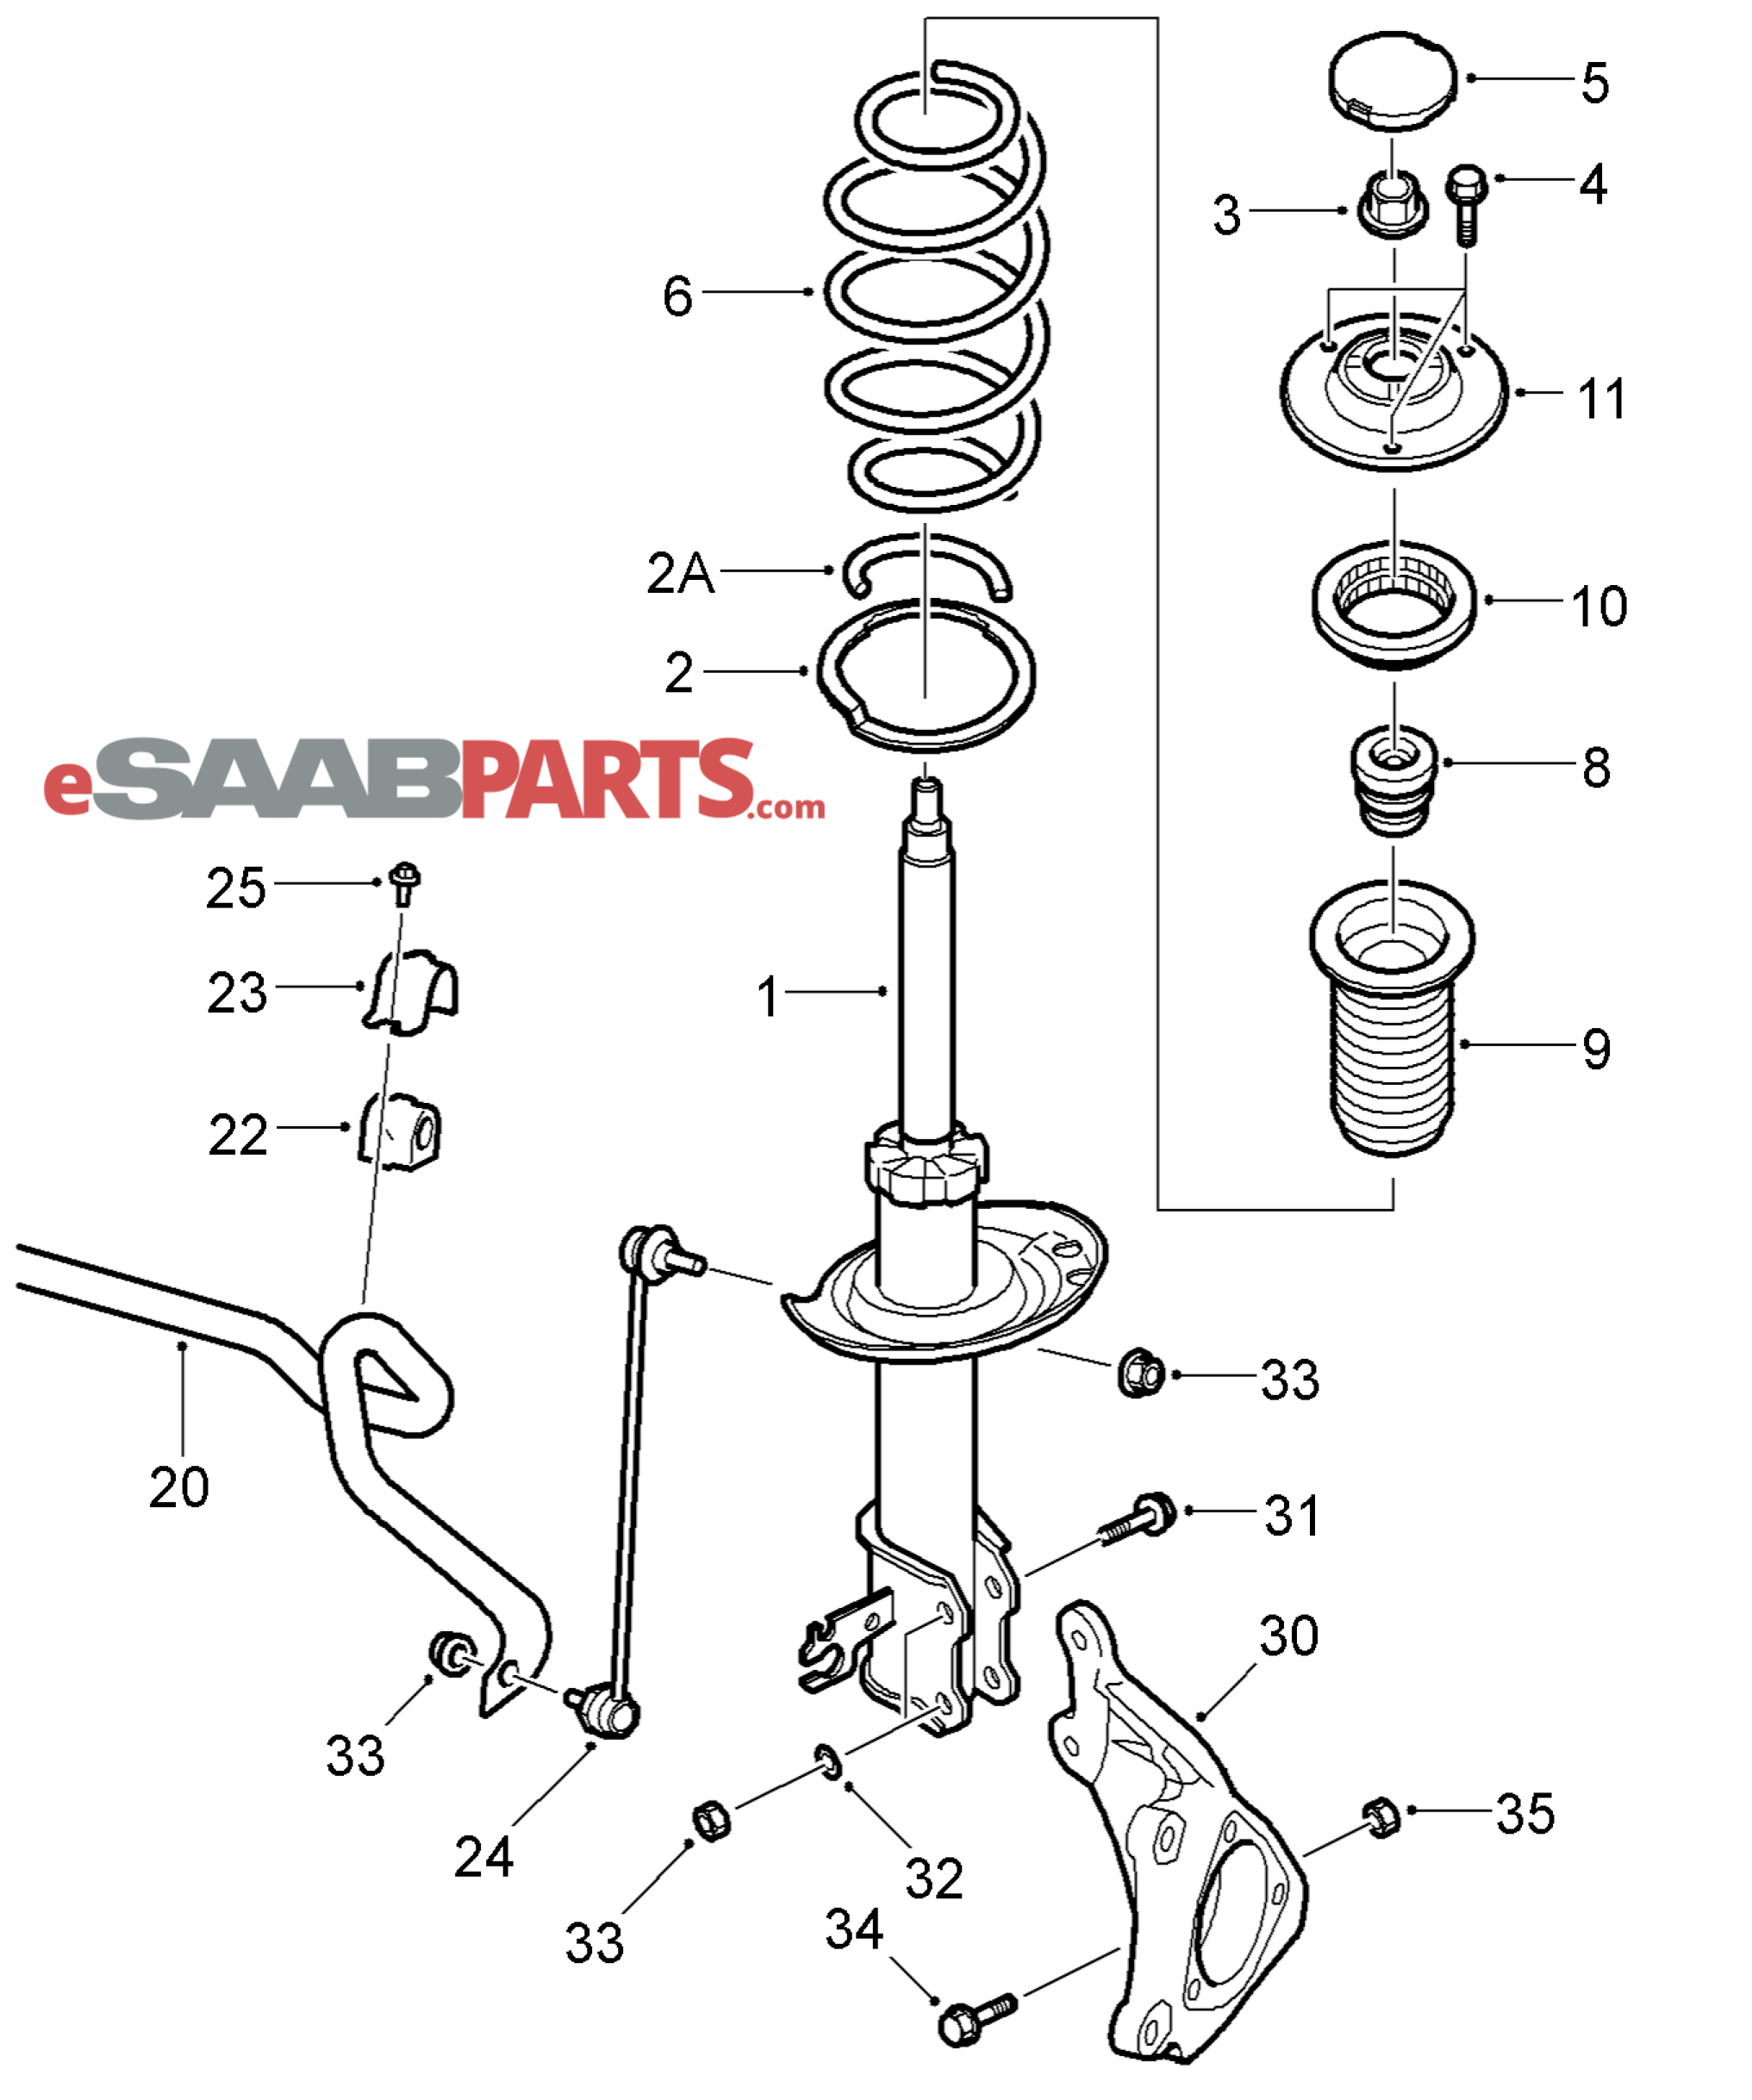 Saab Oem Parts Diagram Wiring Diagram For Free